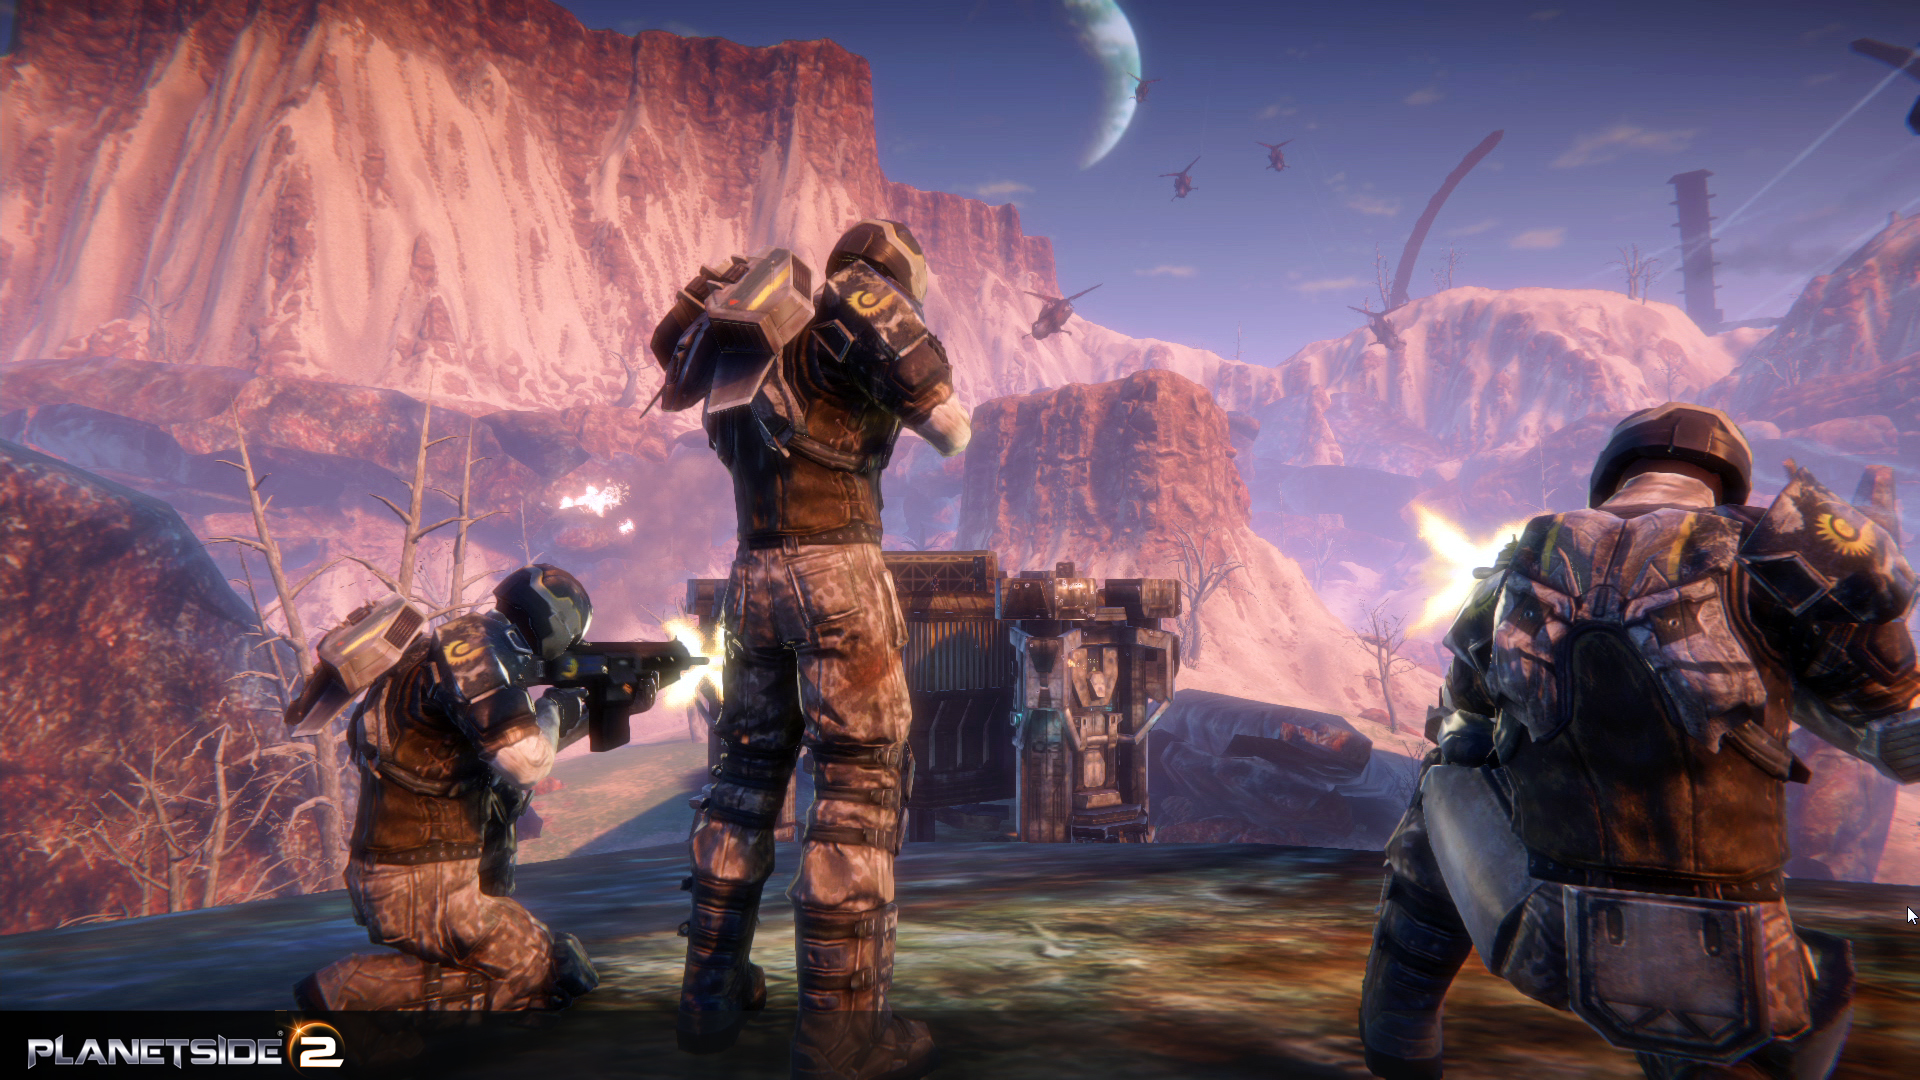 Click image for larger version.Name:Planetside 2 (3).jpgViews:267Size:1.51 MBID:9175